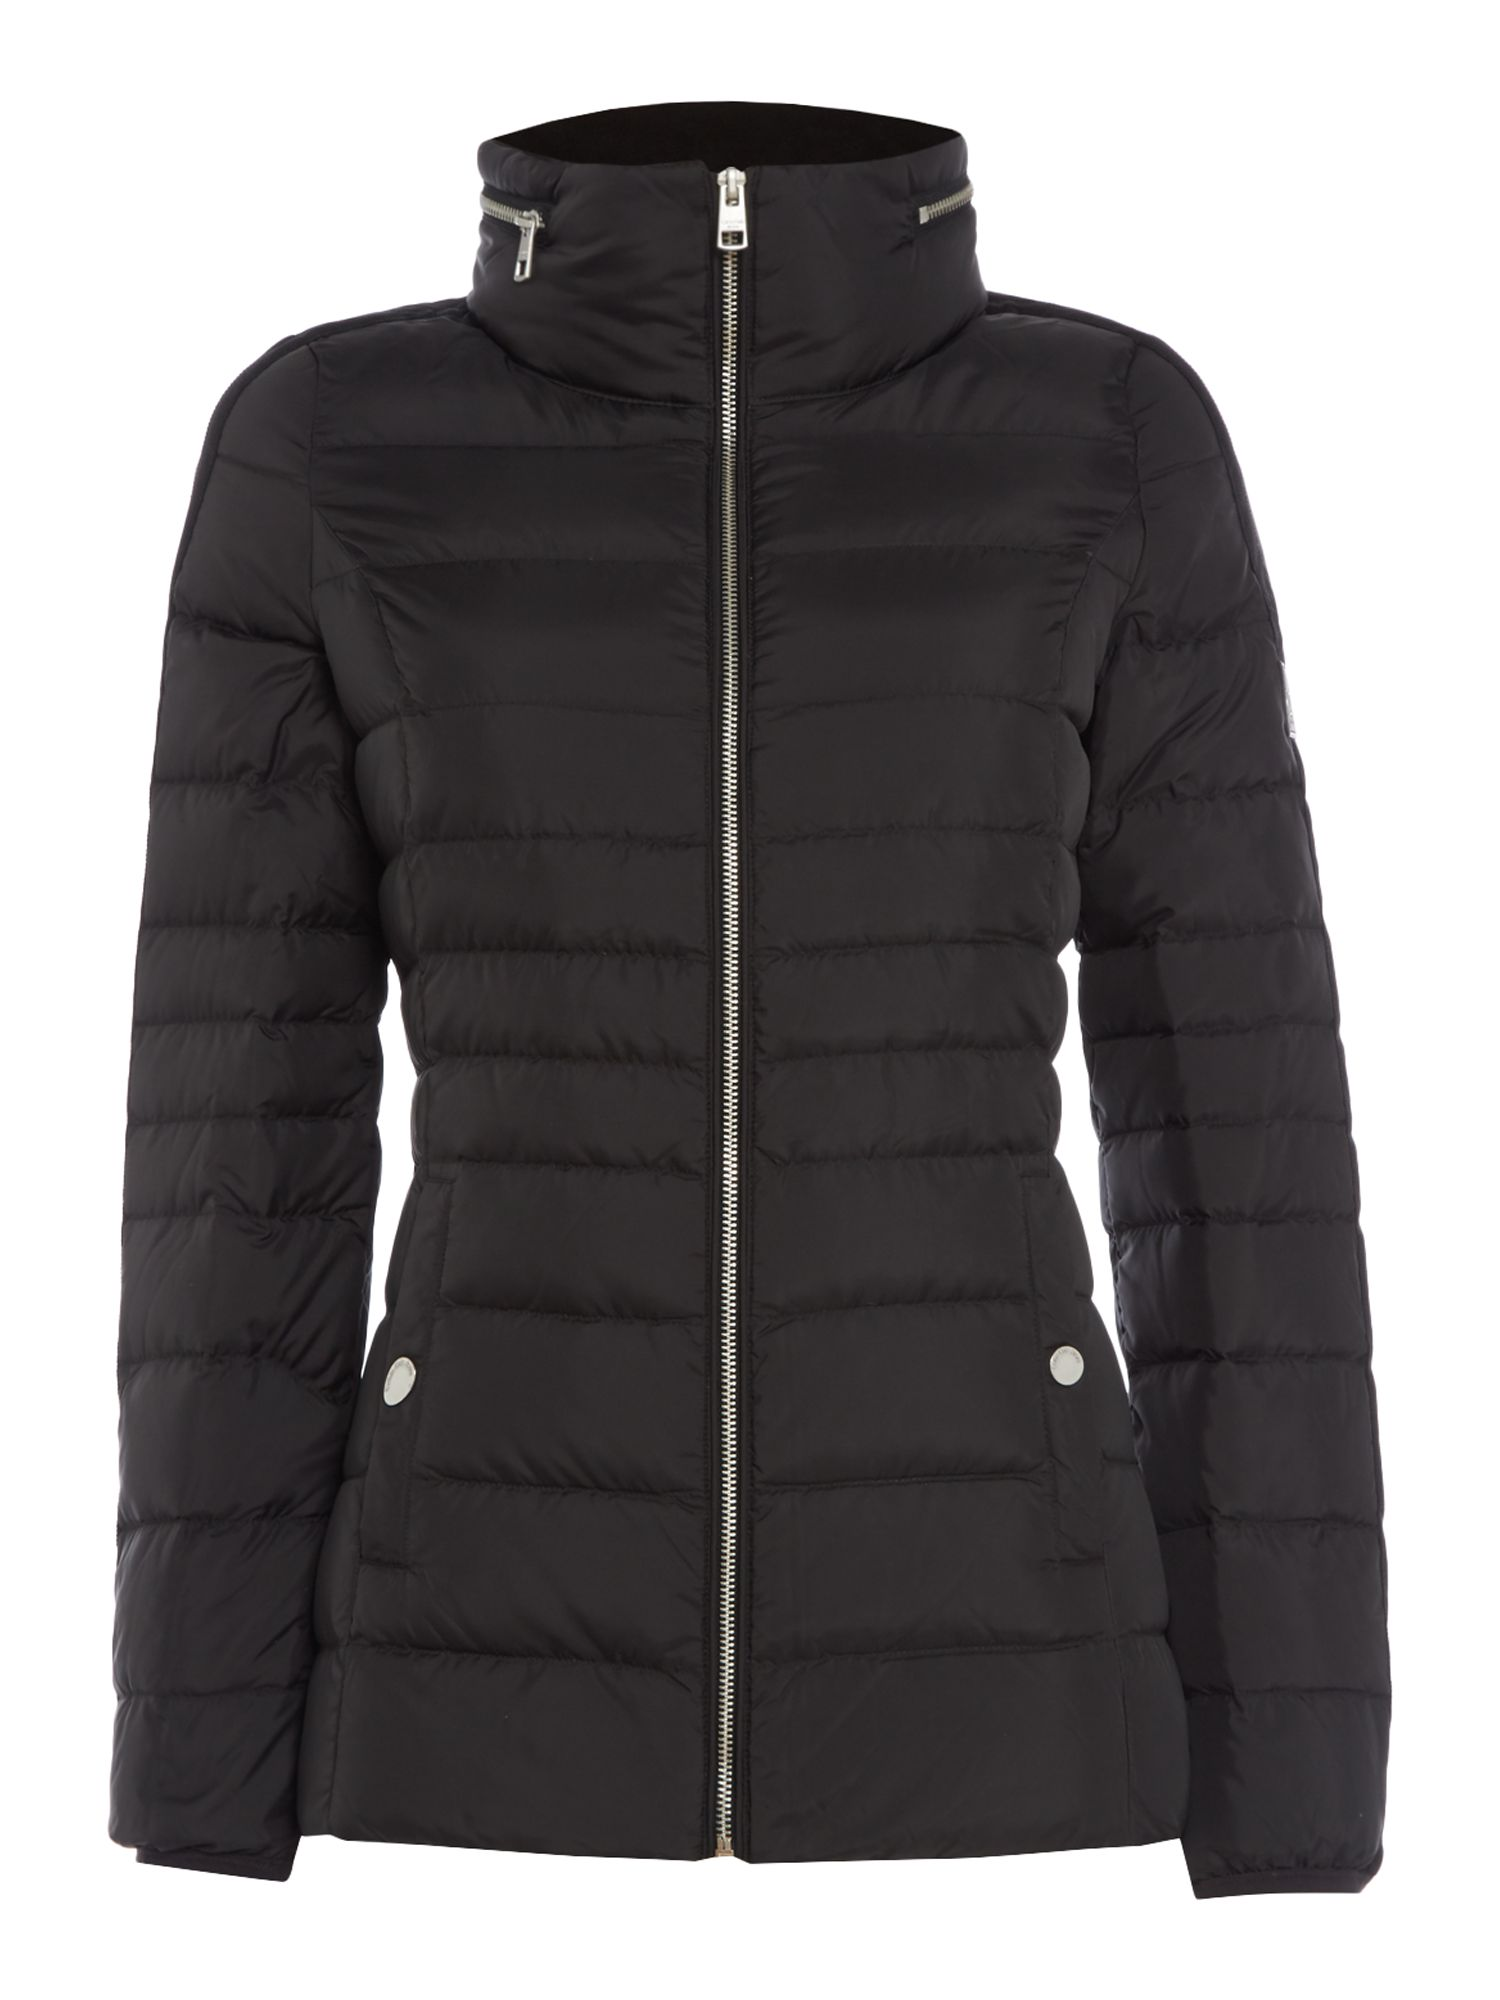 Calvin Klein Obara Puffa Jacket With High Neck in CK Black, Black